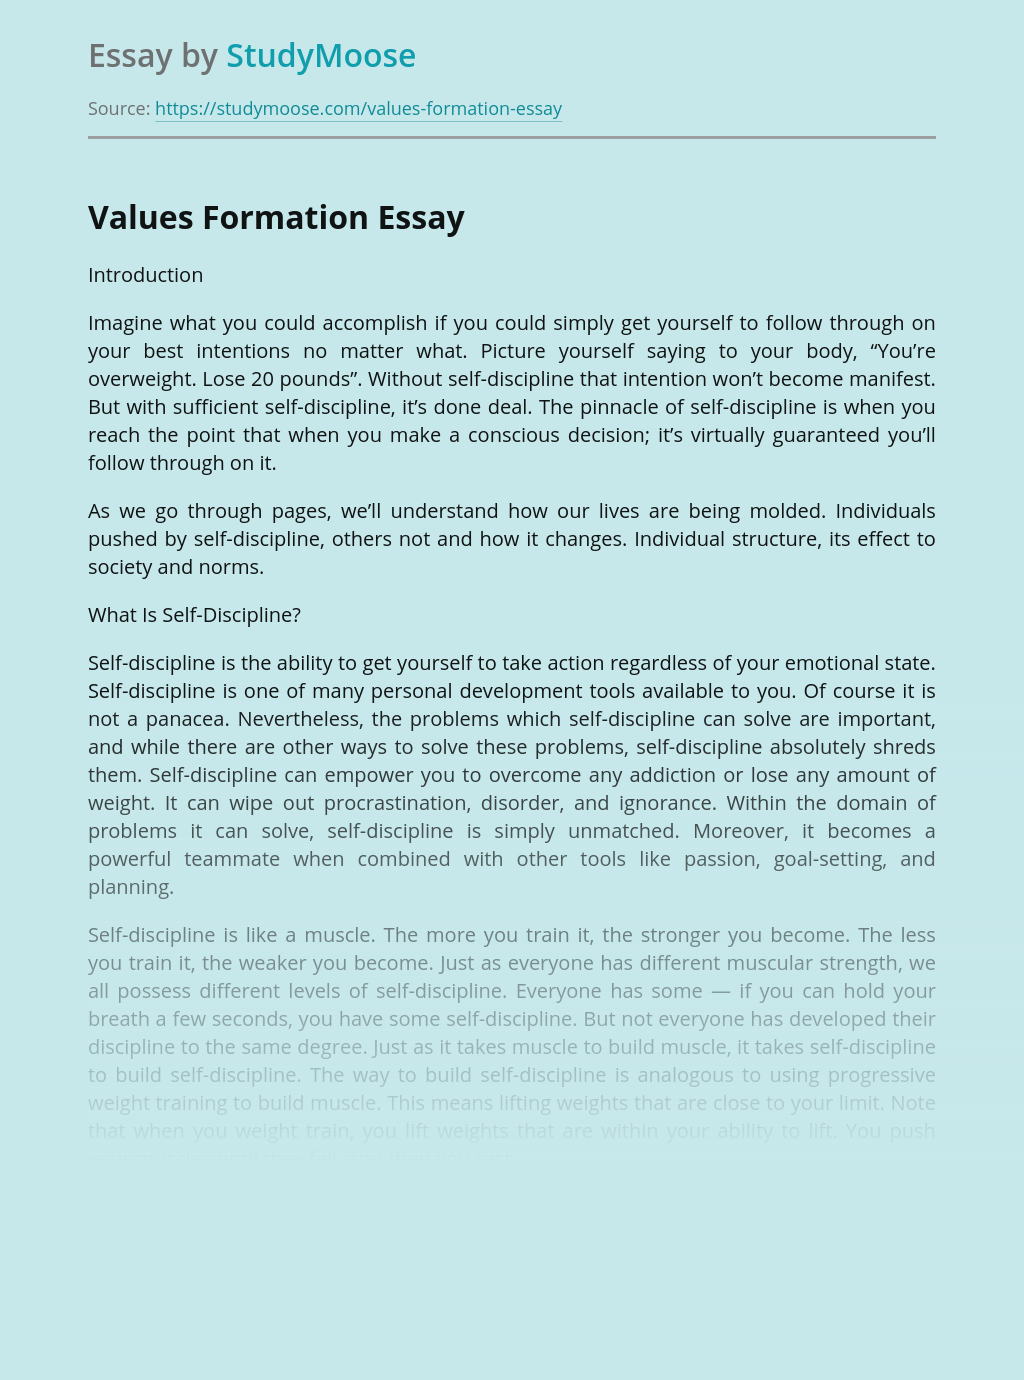 Values Formation